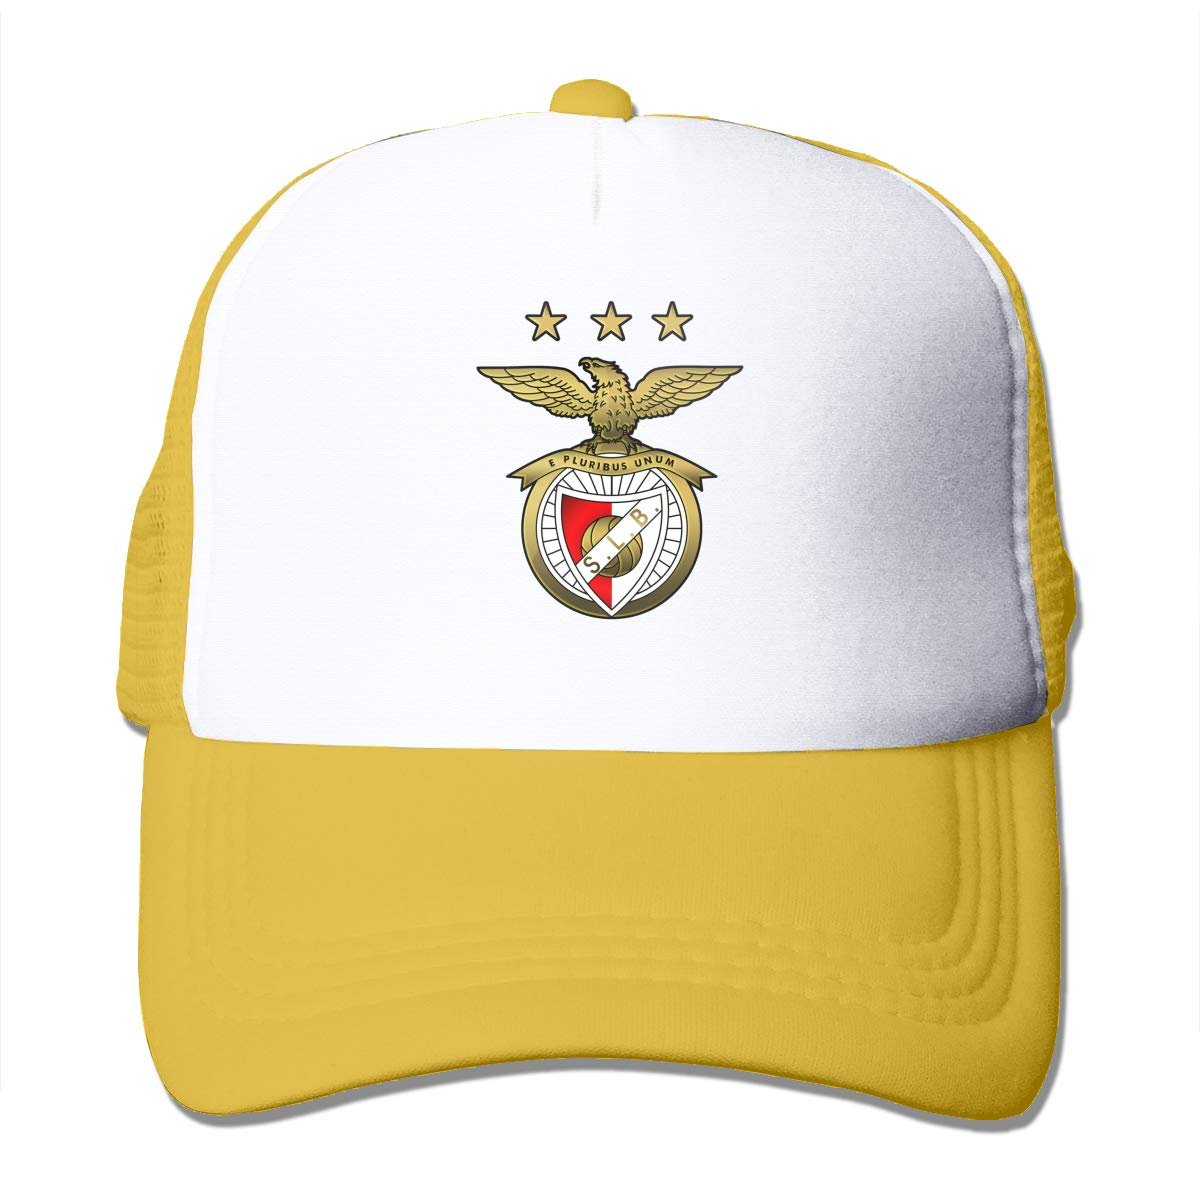 Mesh Sports Baseball Hat Sport Lisboa Sl Benfica Adjustable Trucker Sun Caps for Men Women